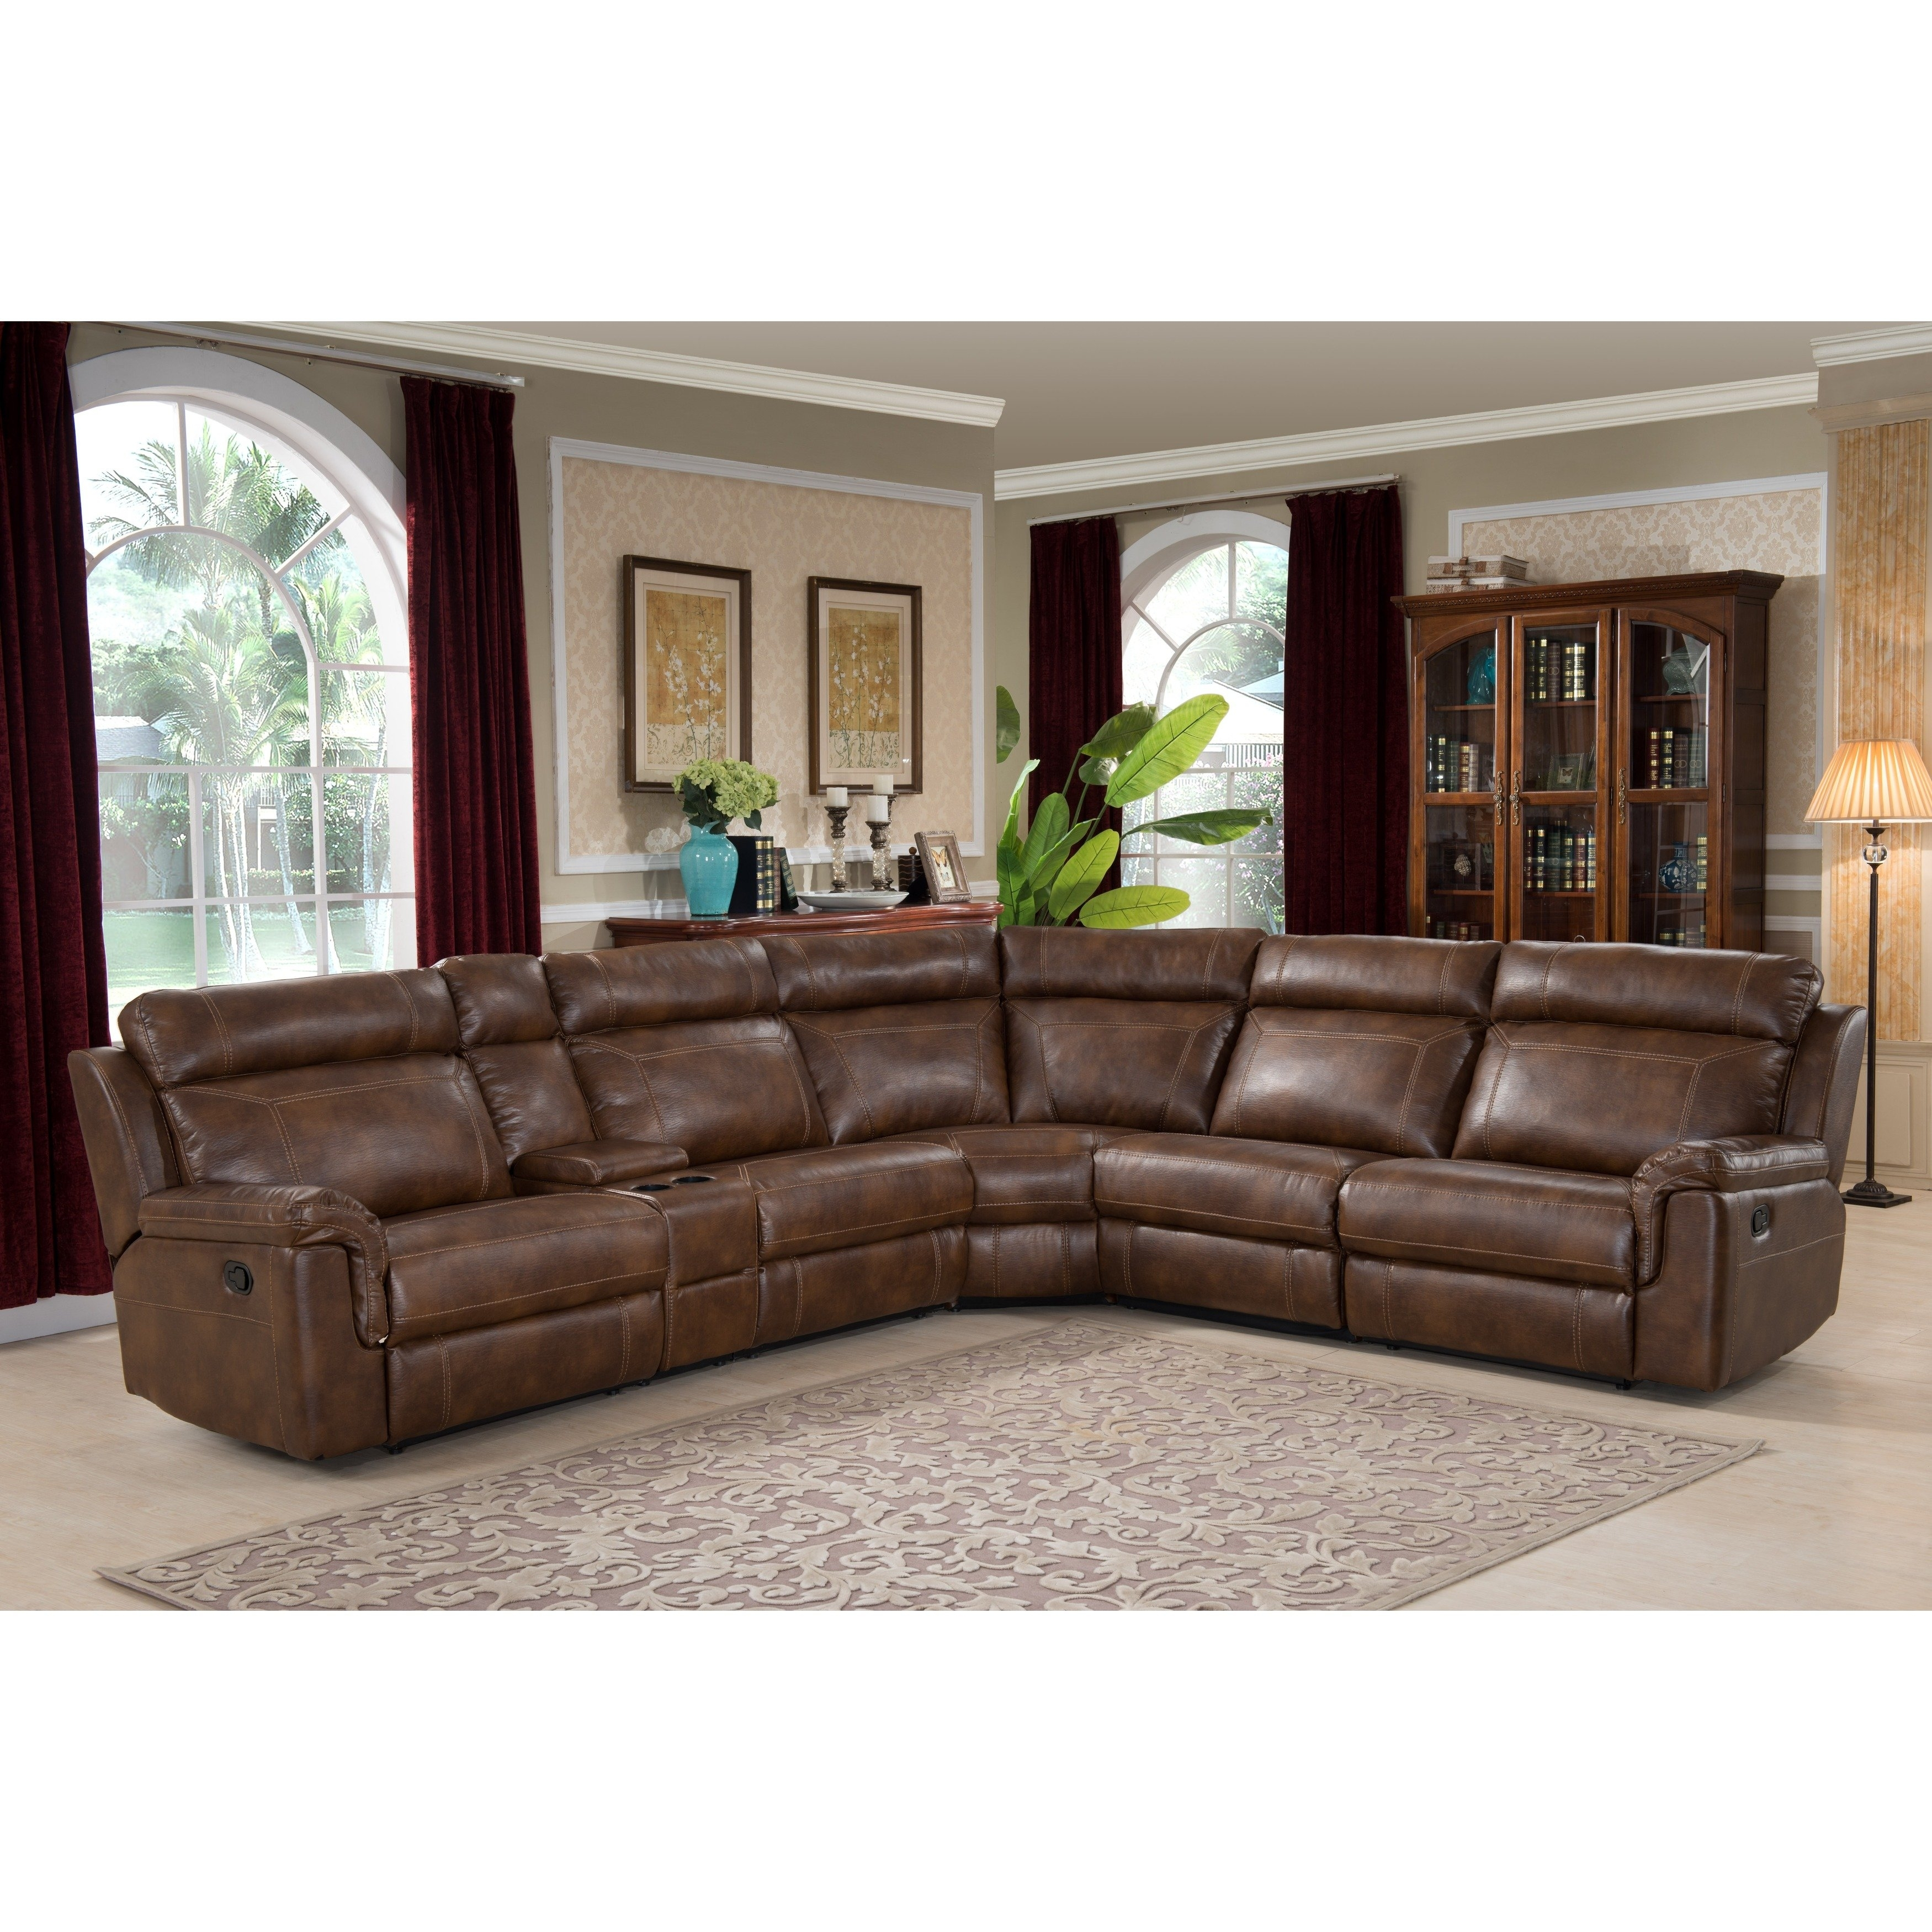 Shop Nicole Brown Large 6 Piece Family Sectional With 3 Recliners With Regard To Harper Down 3 Piece Sectionals (Image 22 of 25)